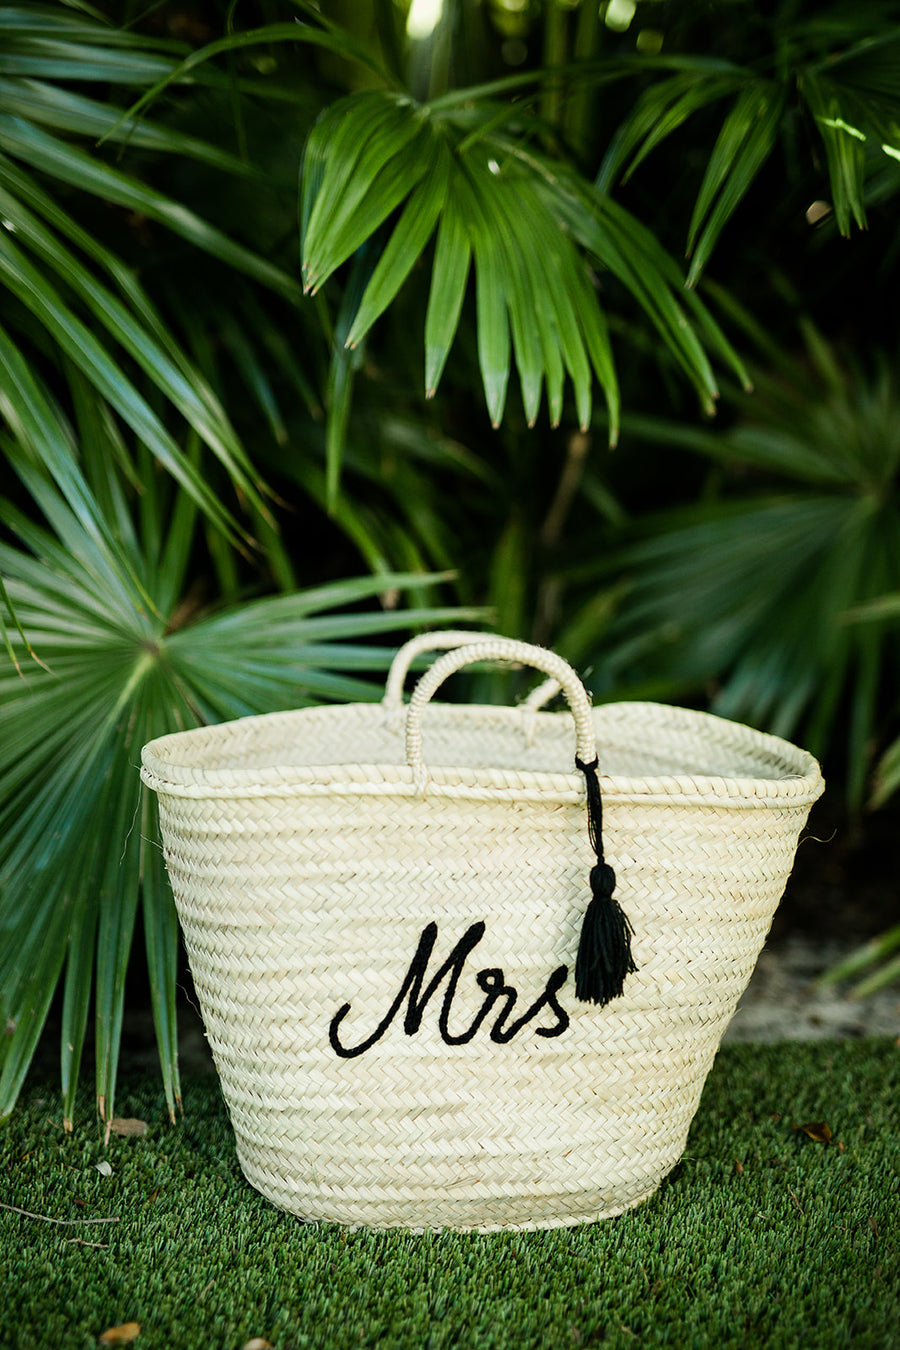 Mrs Large Beach Tote - The Beach Bride by Chic Parisien, a destination for beach weddings, bachelorettes and honeymoons